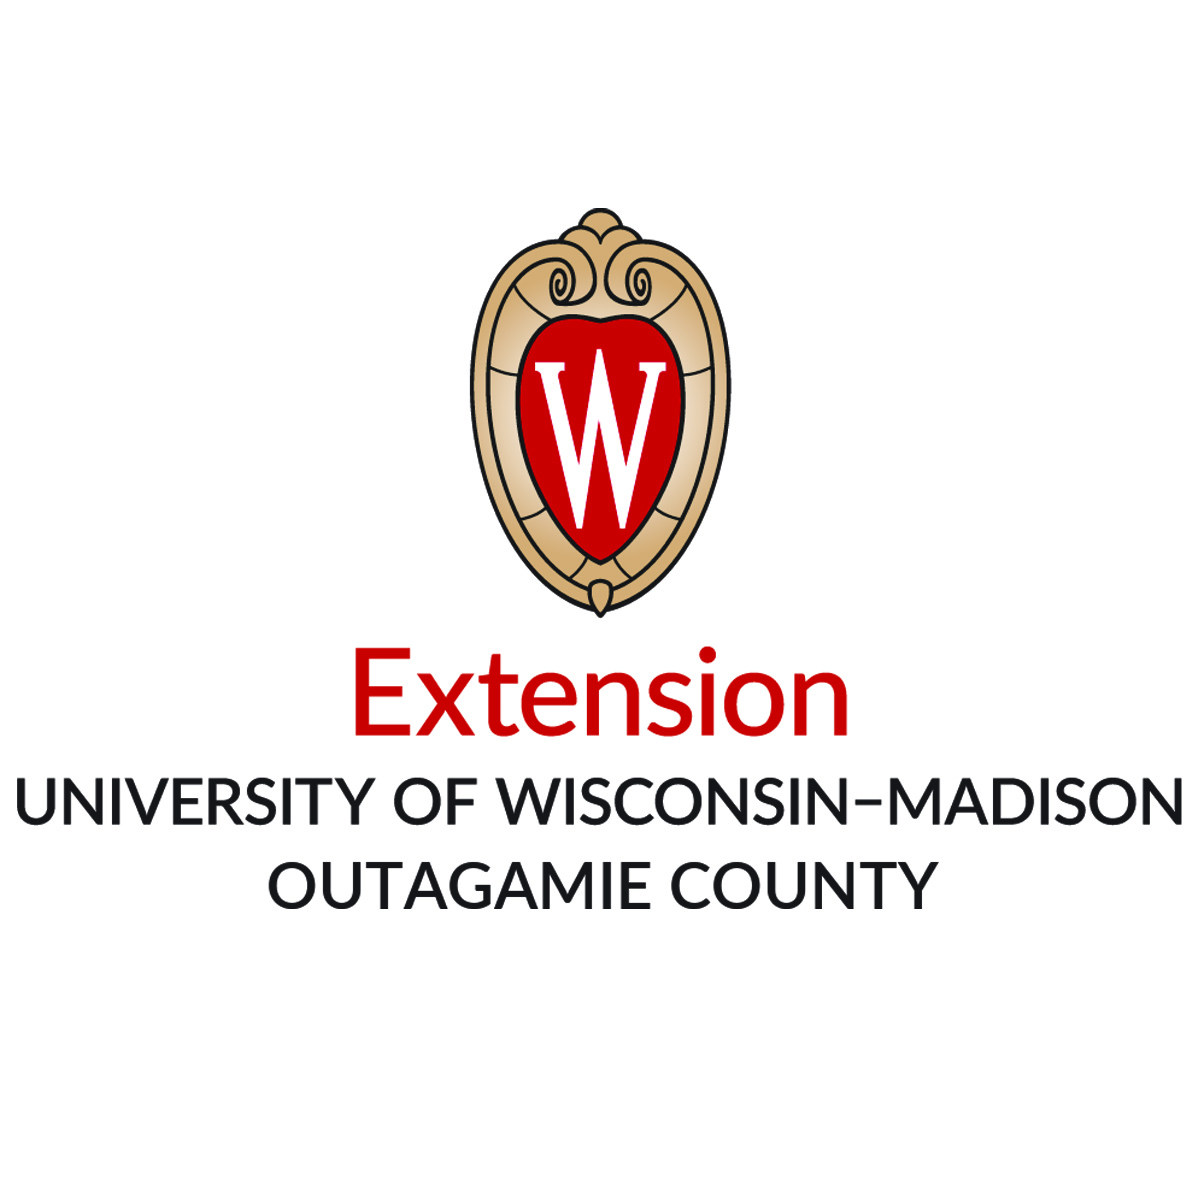 A red and gold shield with a w in the middle. The words: Extension University of Wisconsin-Madison Outagamie County